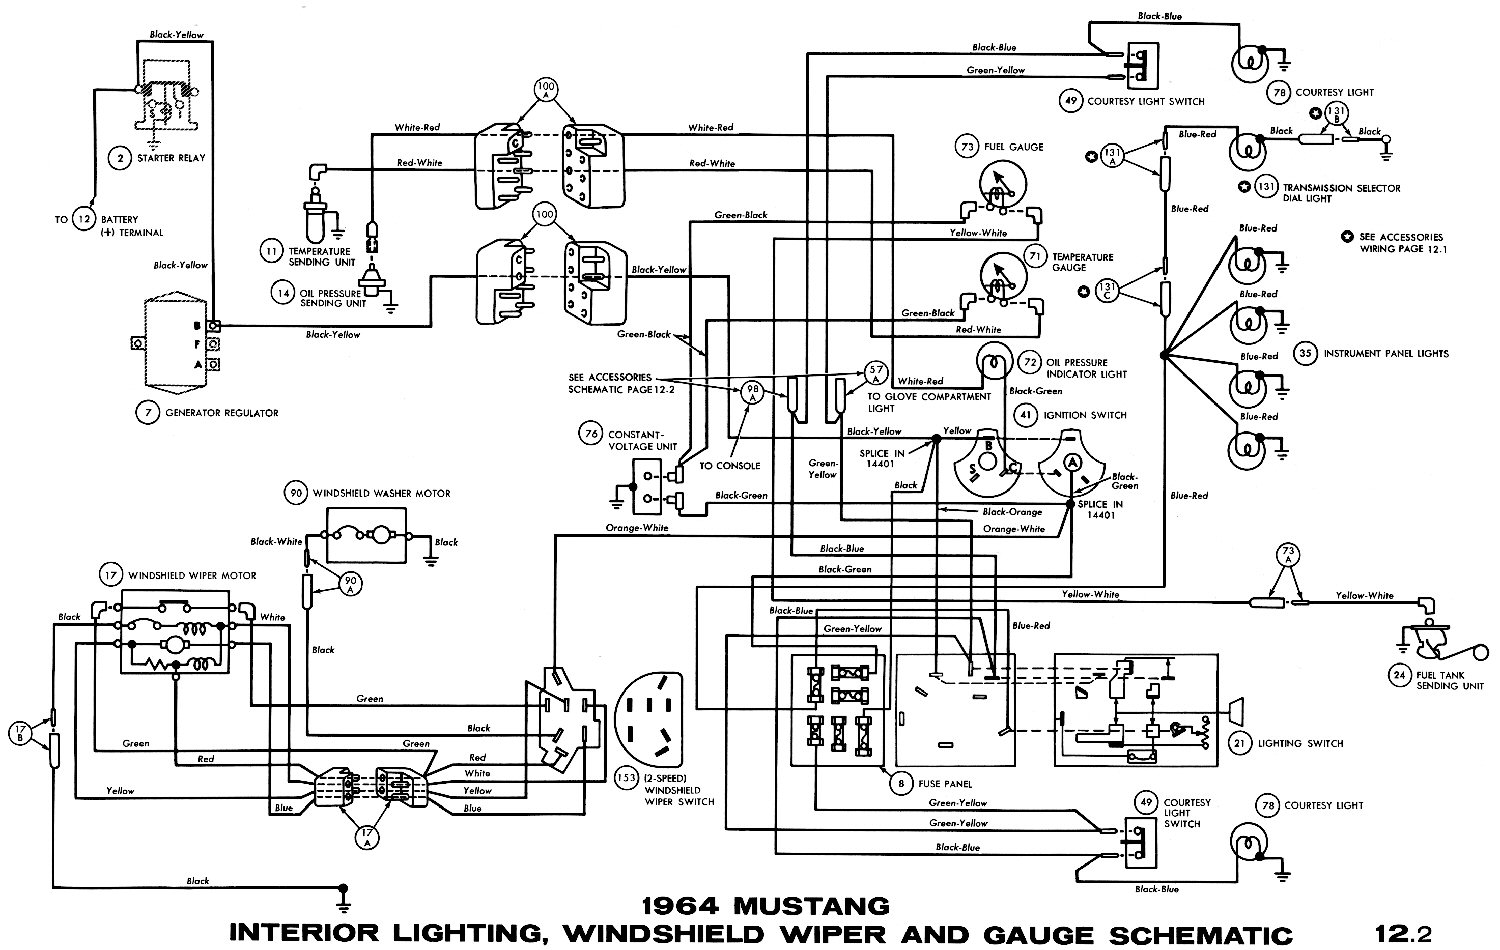 1964k 1964 mustang wiring diagrams average joe restoration 1967 mustang wiring diagram at gsmportal.co